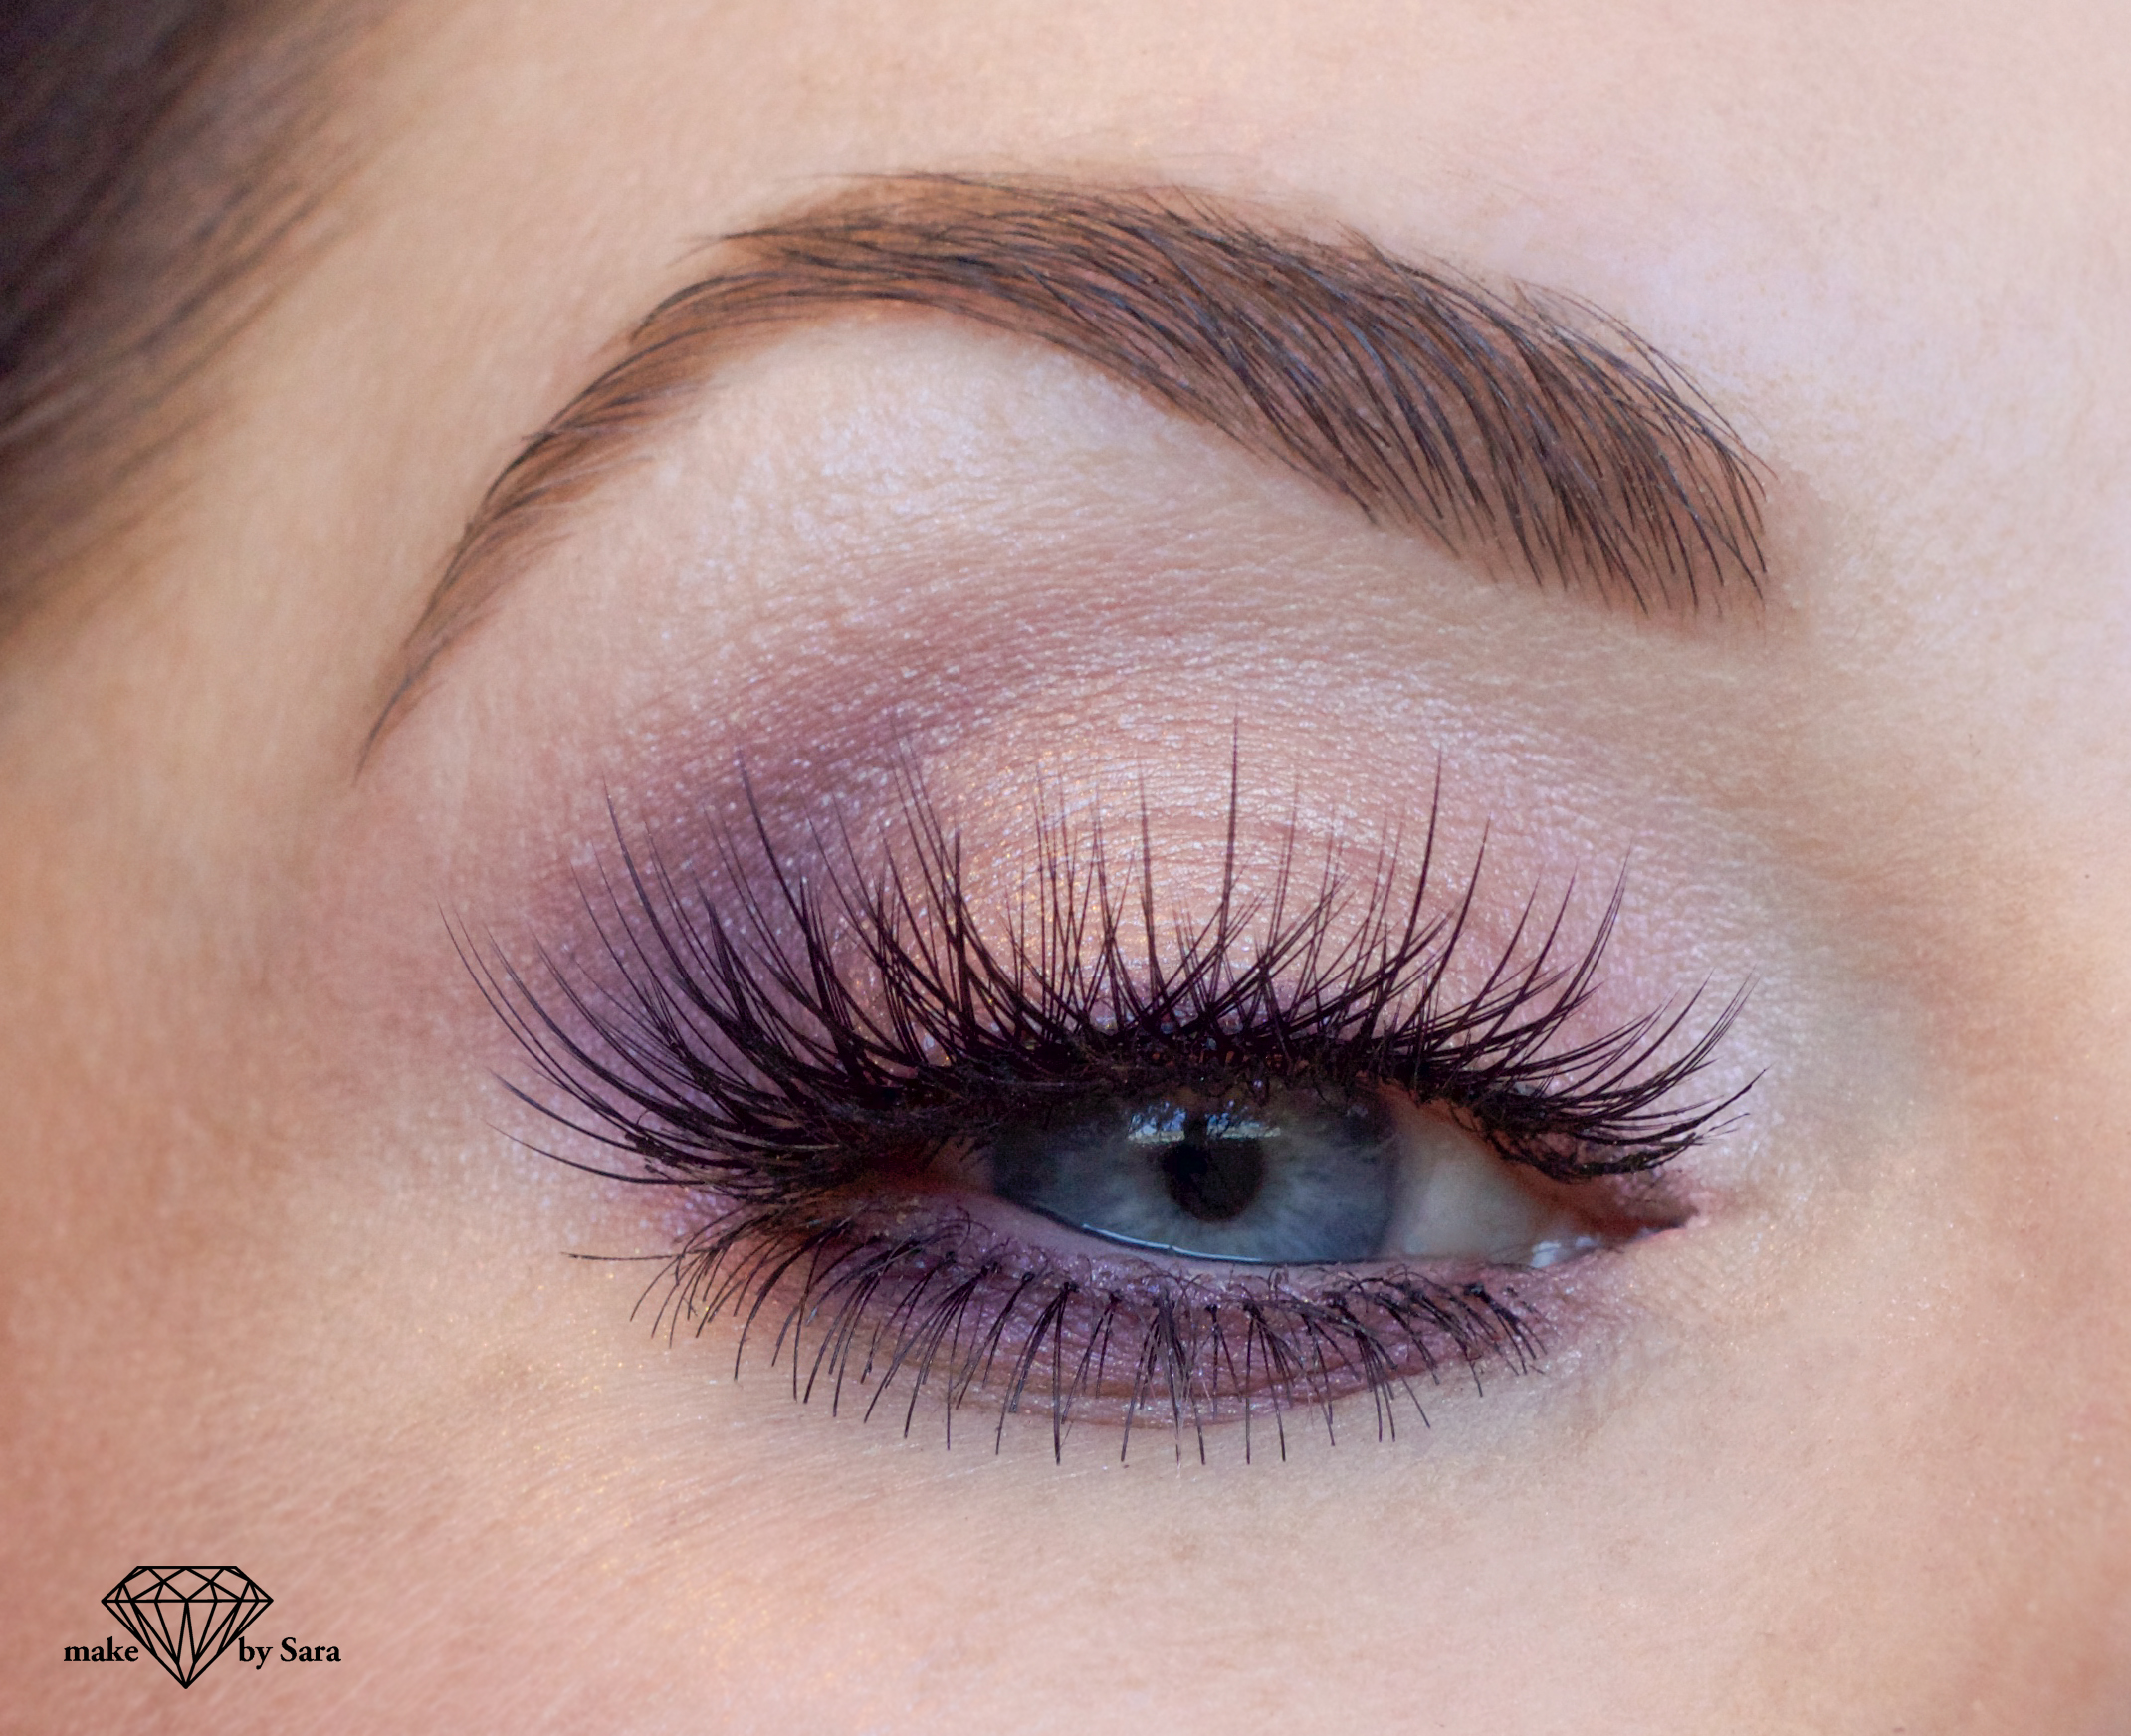 Squishy Eyeball : Soft Romantic glamour makeup ? Look for Spring 2016 Make by Sara